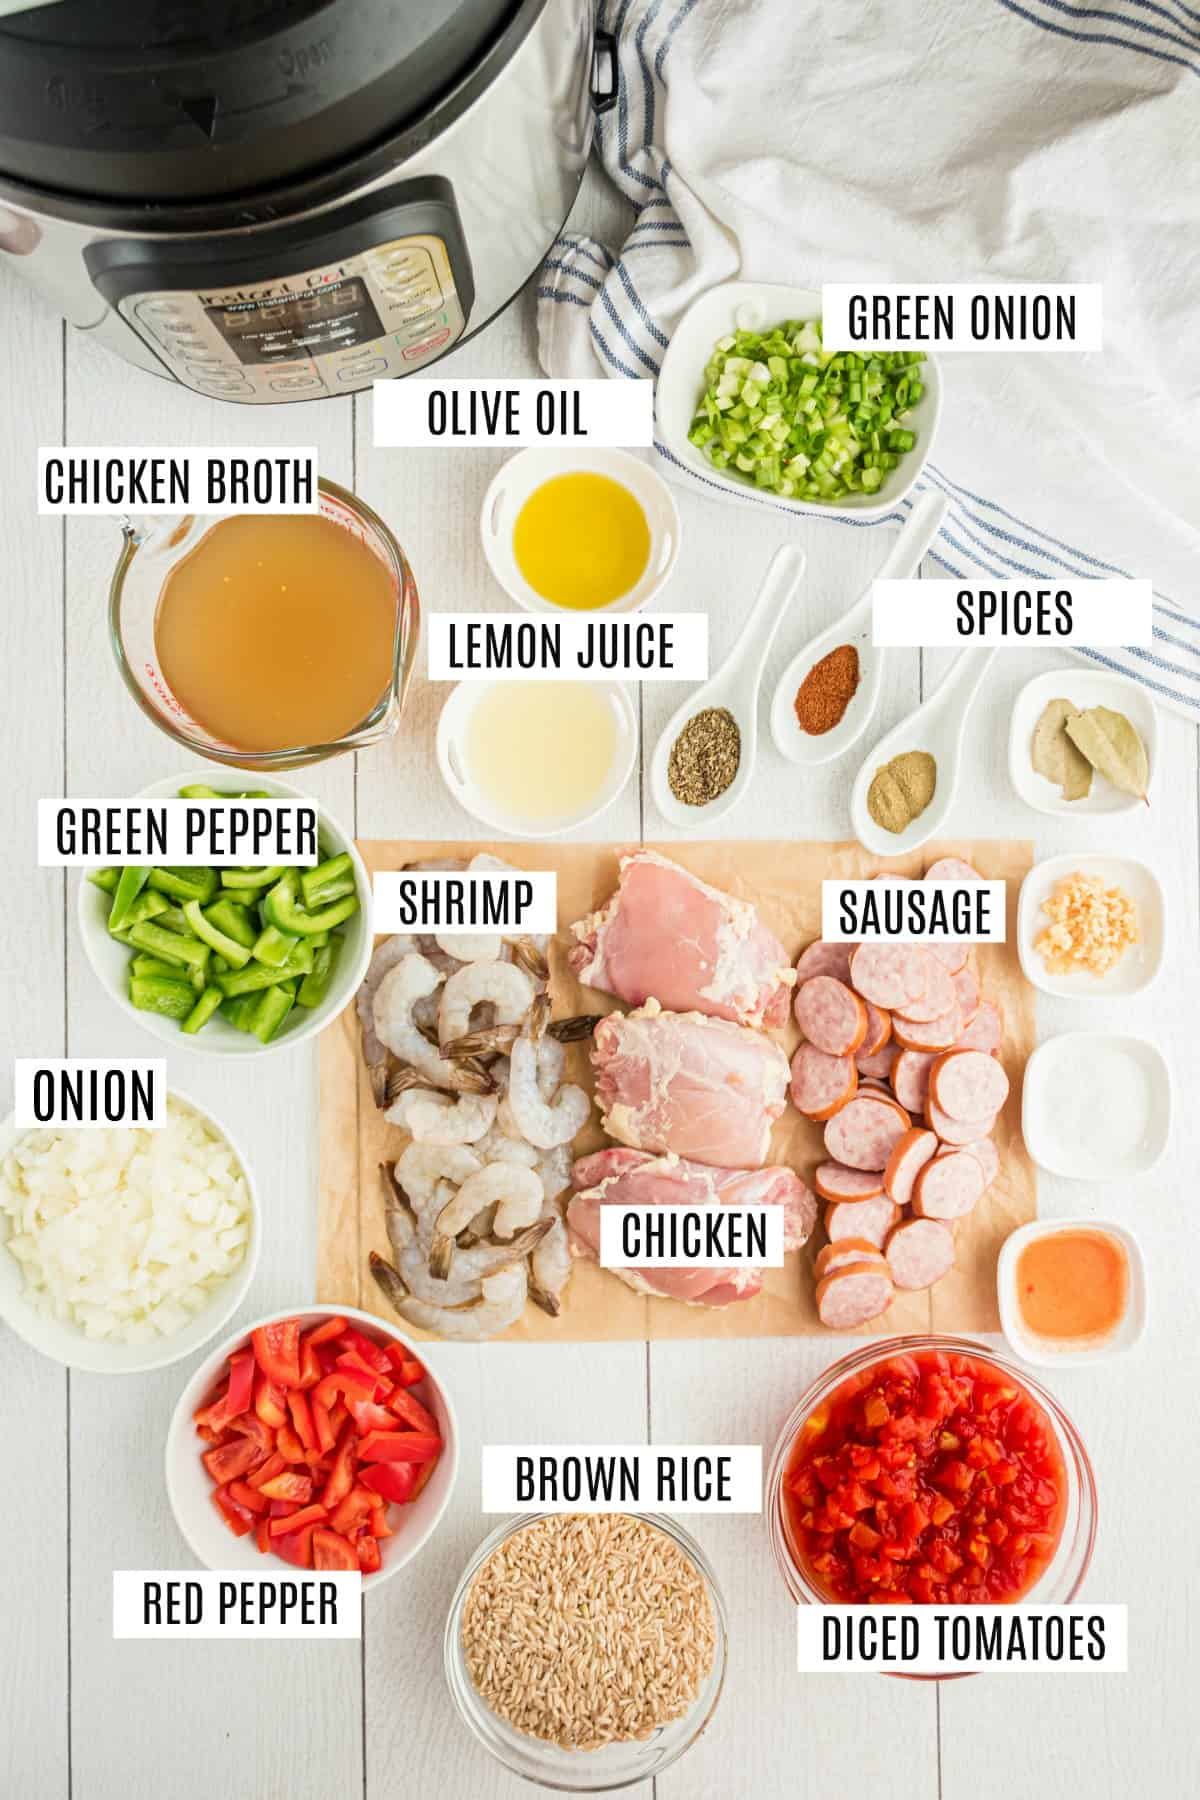 Ingredients needed to make Jambalaya in the Instant Pot, including sausage, chicken, and shrimp.